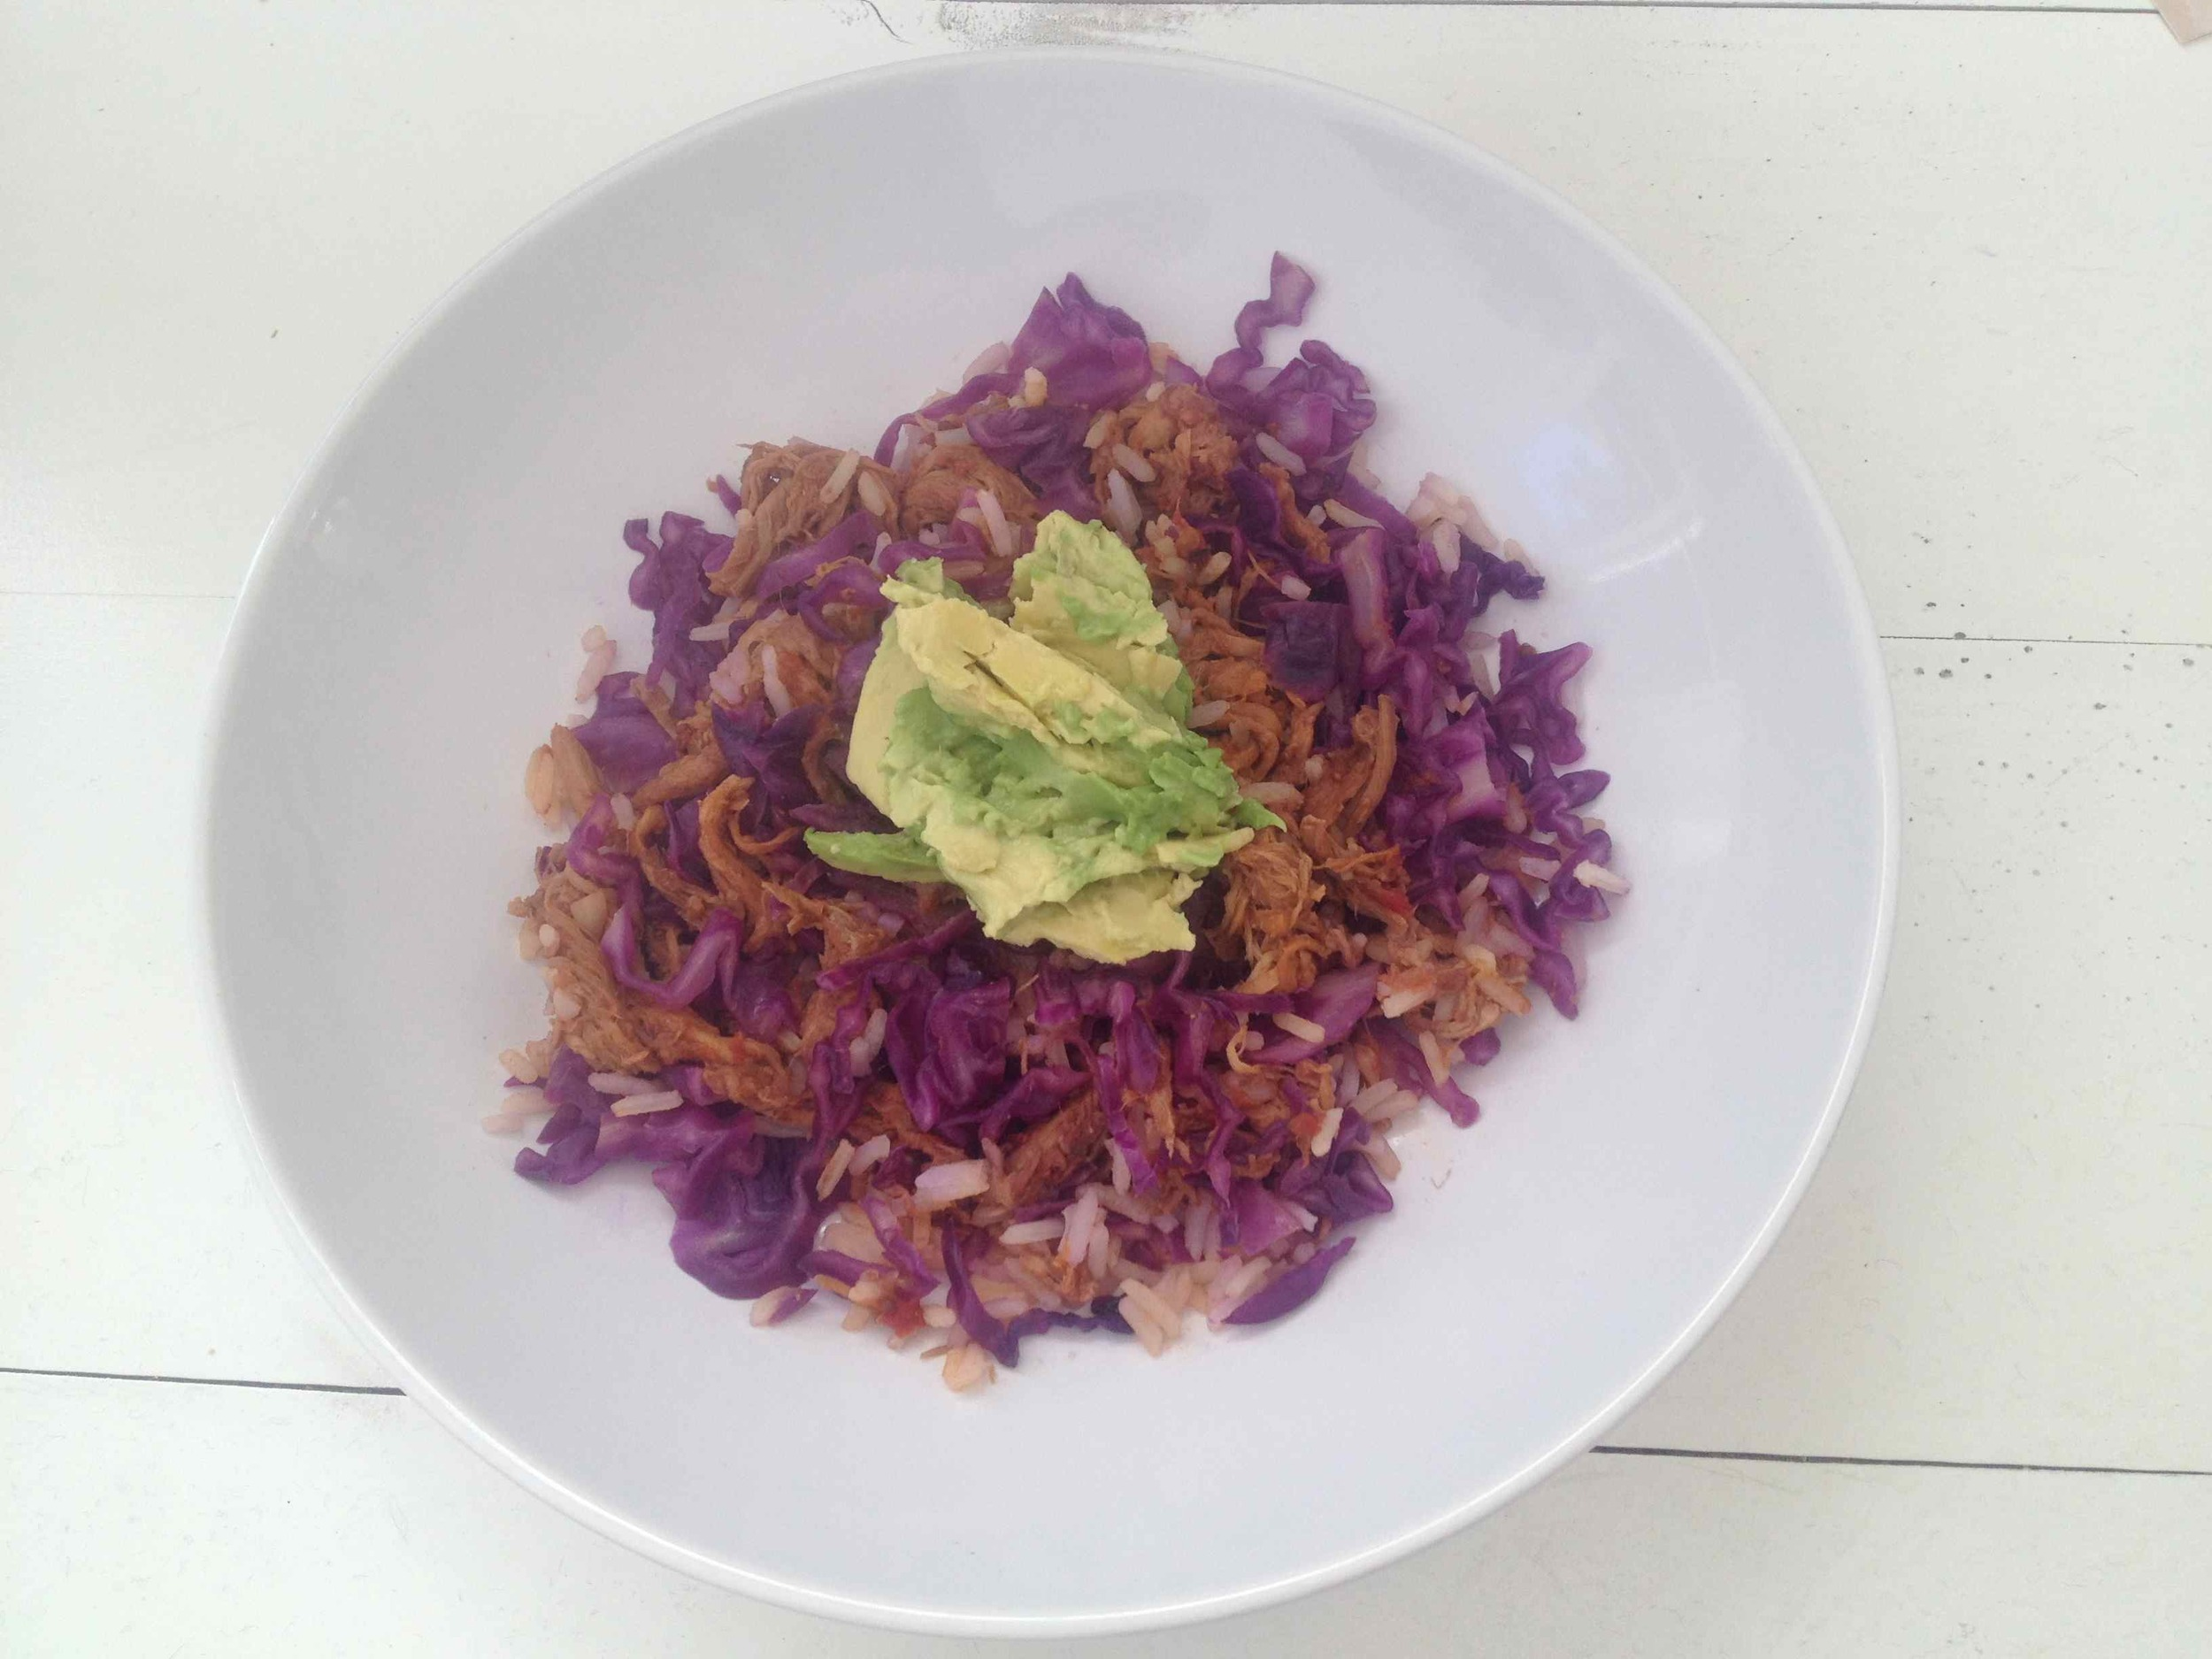 Wednesday | Feezer meal. Pulled Pork with BBQ sauce, served on rice with red cabbage & avocado